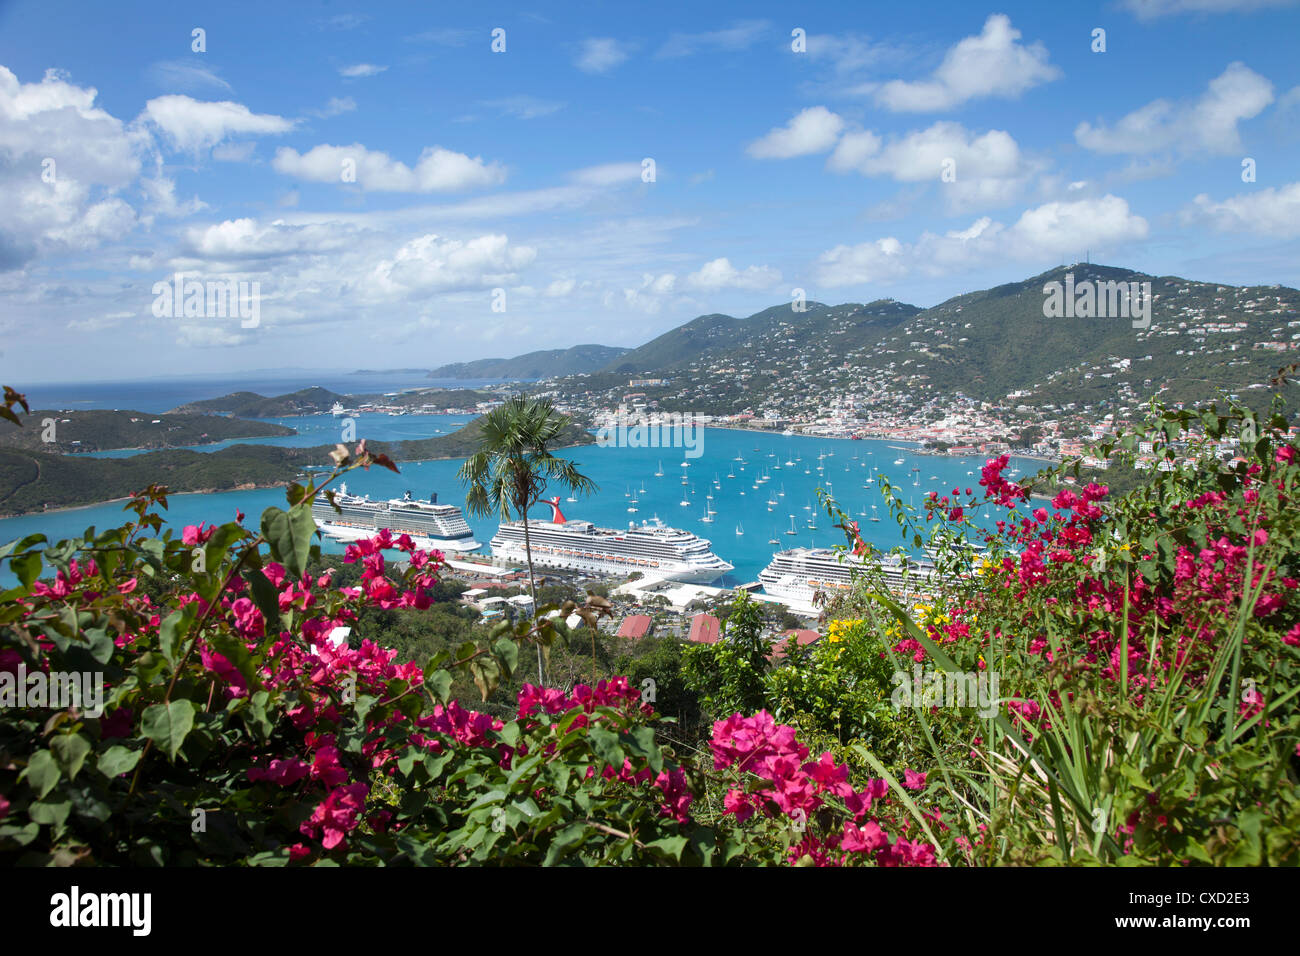 Charlotte Amalie, St. Thomas, U.S. Virgin Islands, West Indies, Caribbean, Central America Stock Photo